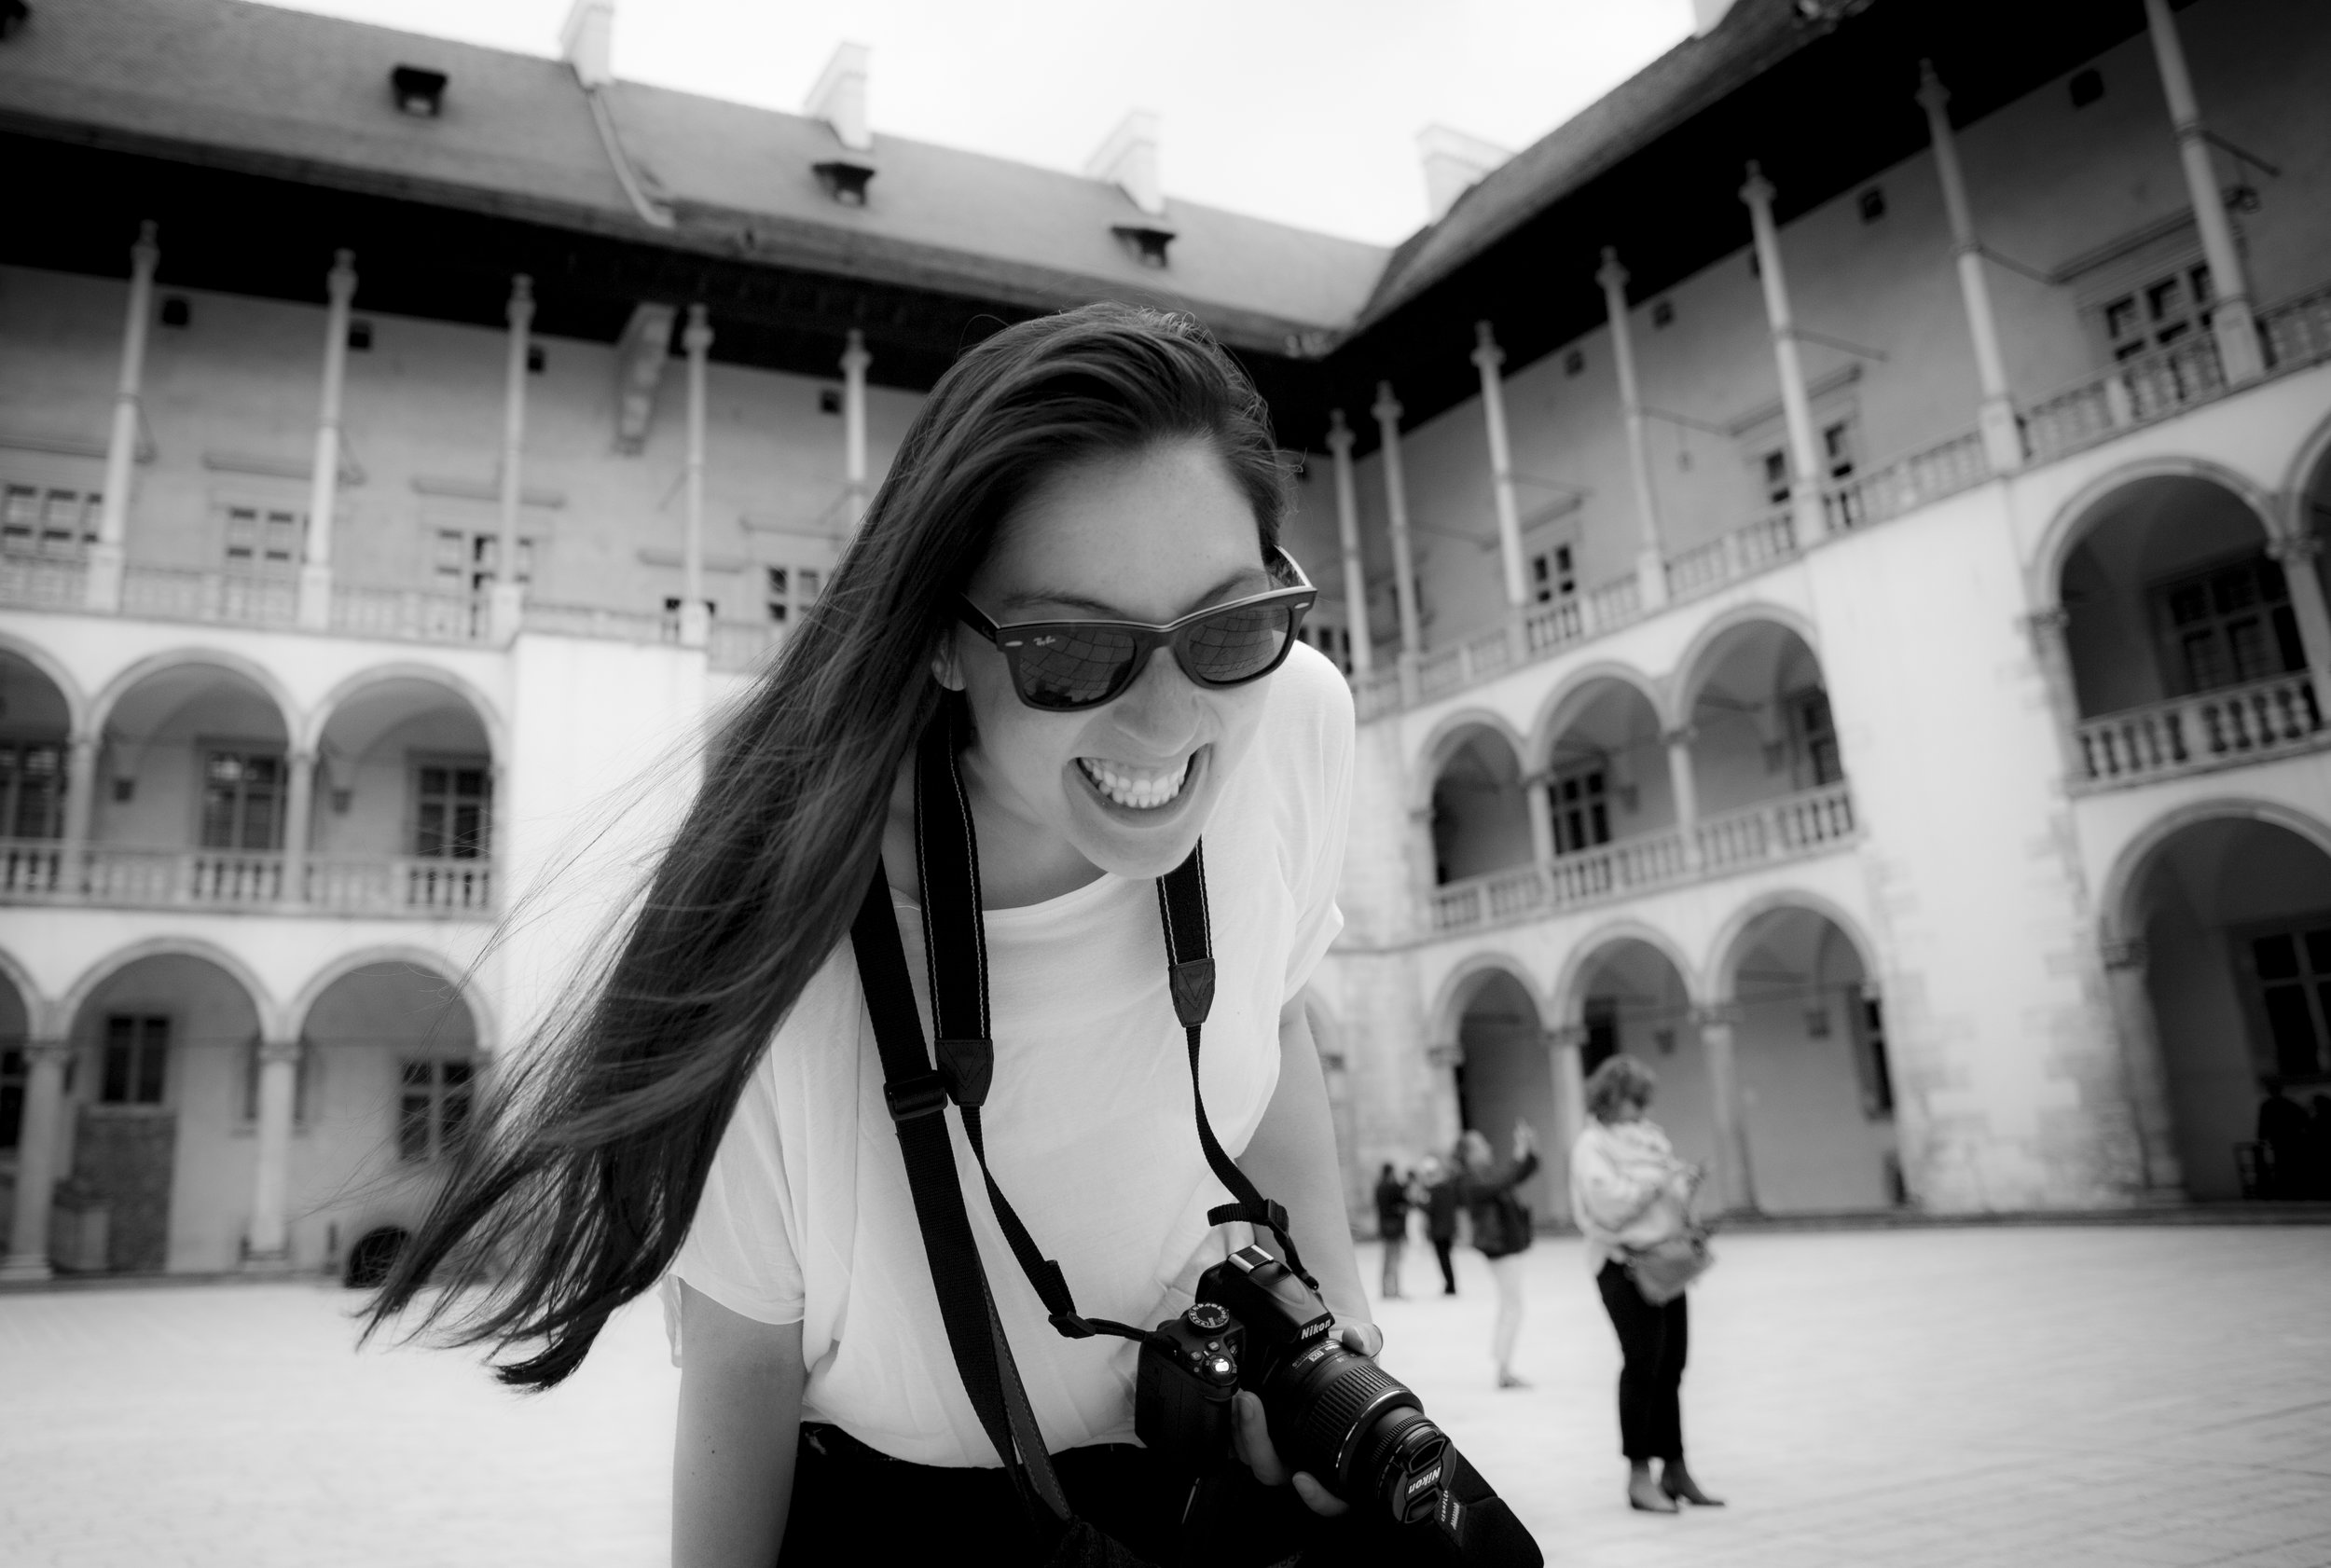 Stephanie with her camera while travelling in Krakow, Poland.